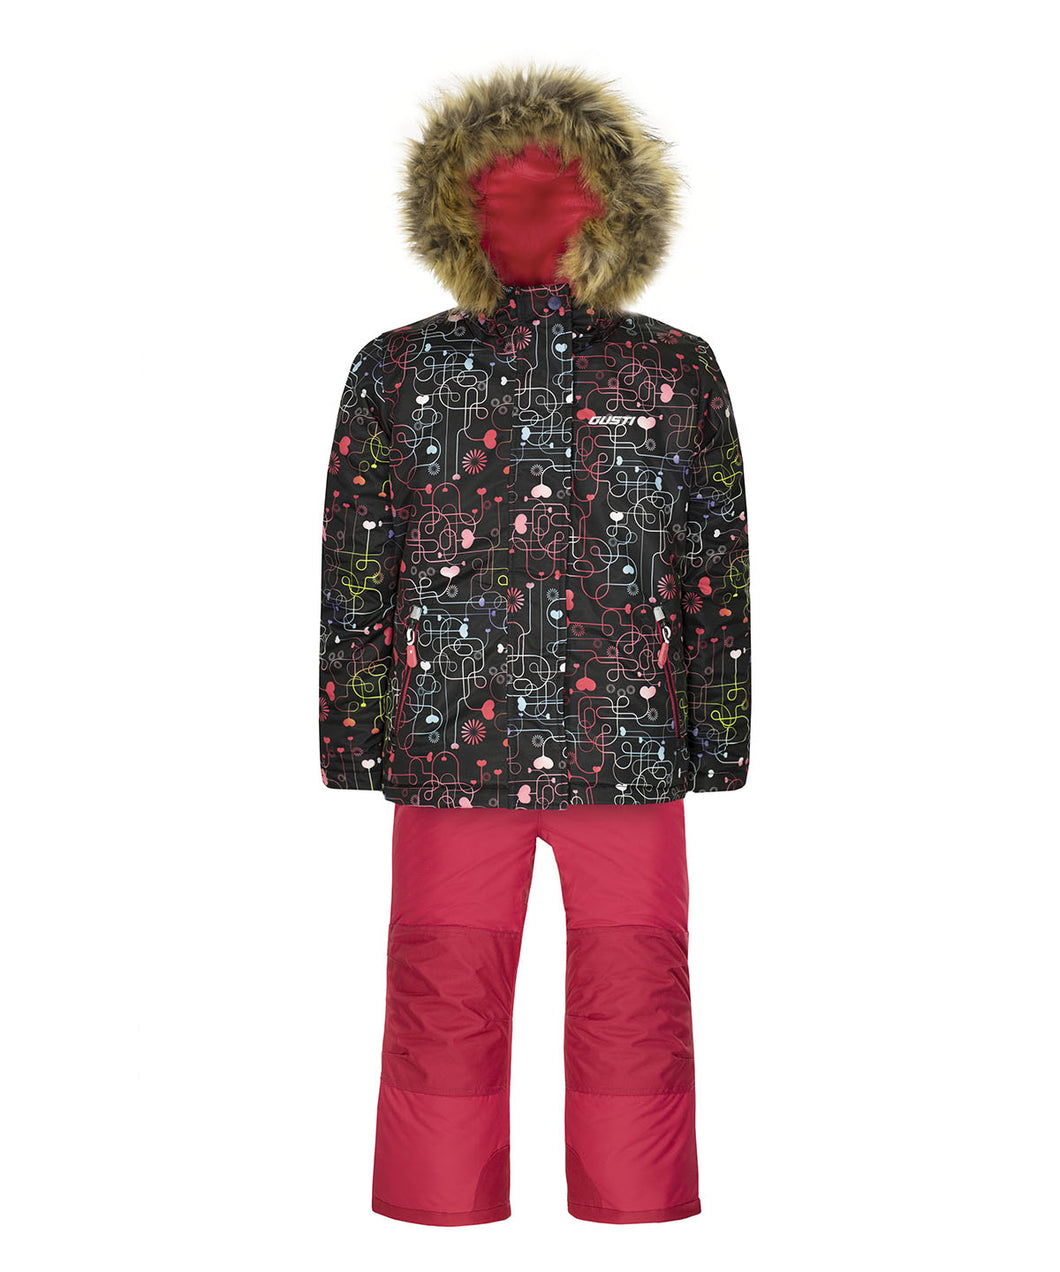 ODILA - Black - Girls Jacket and Snow Pant Set